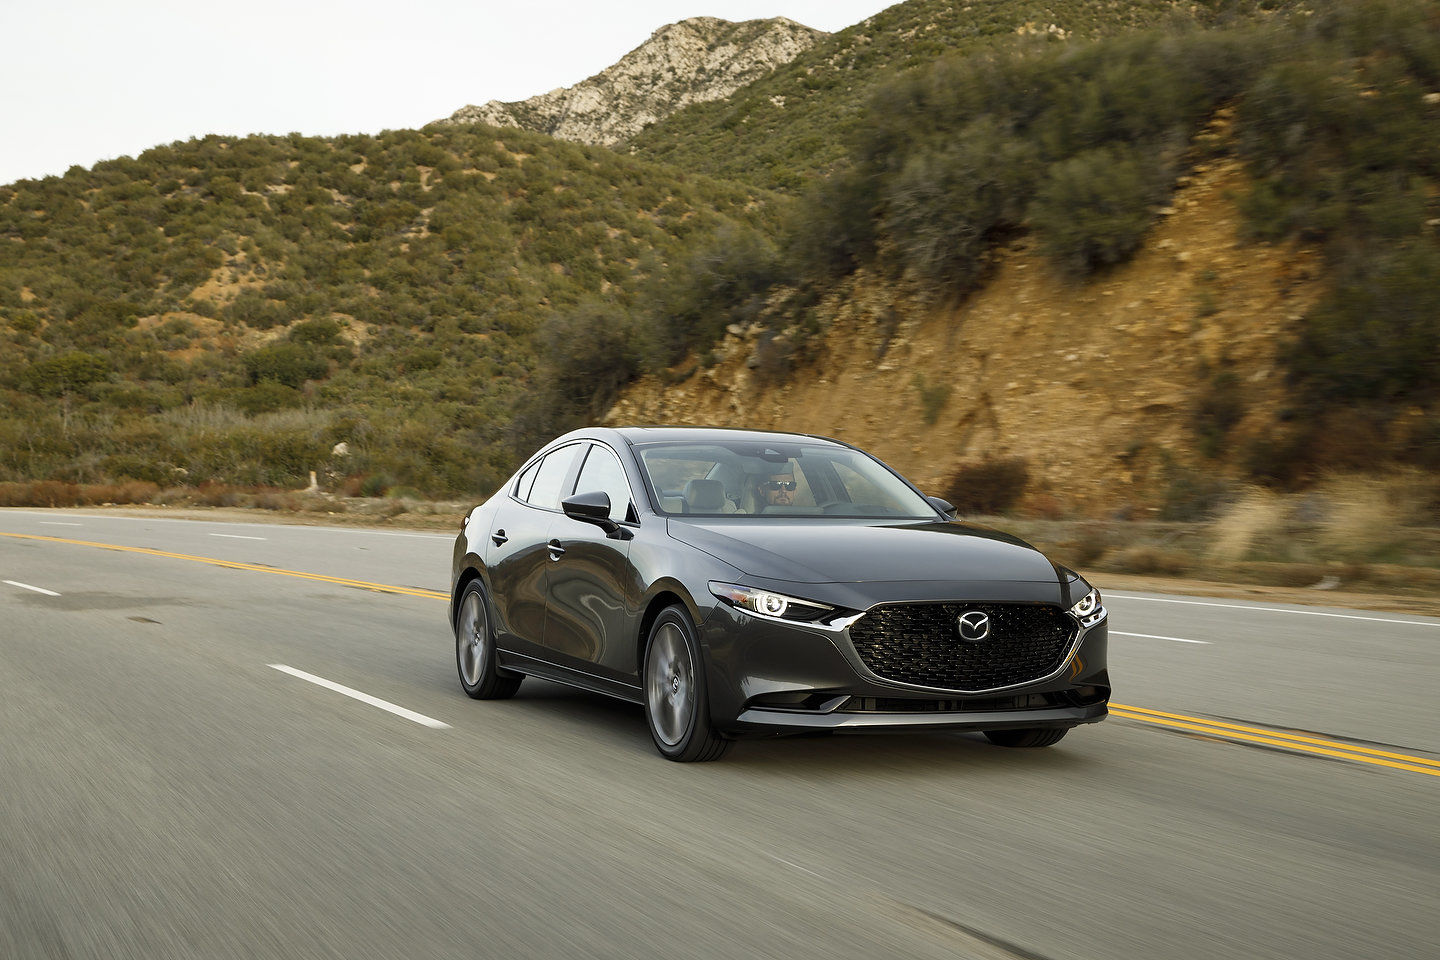 The new 2019 Mazda3 priced starting at $18,000